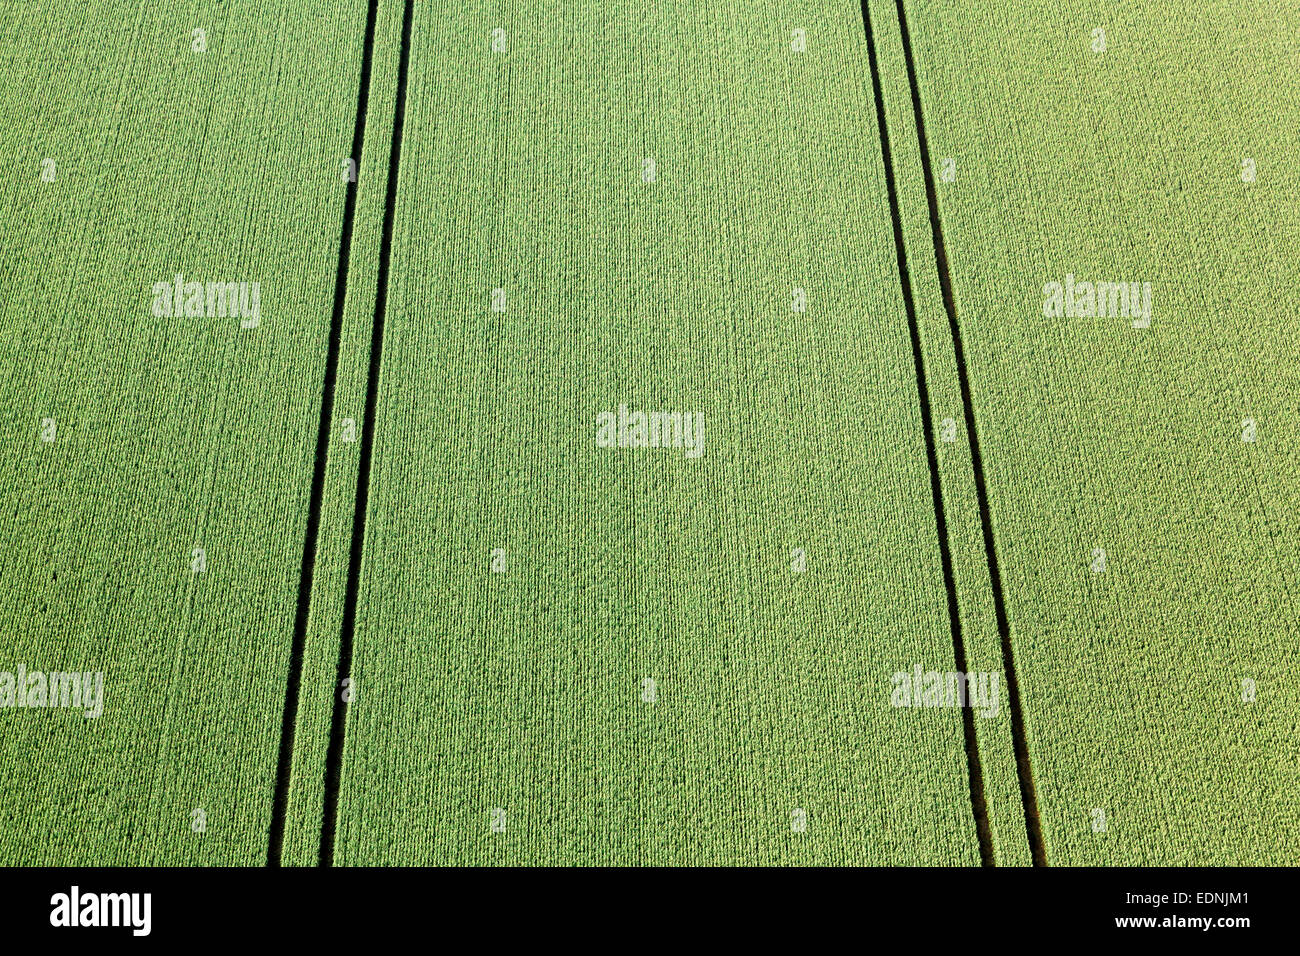 Aerial view, green wheat field with tractor tracks, Landshut, Lower Bavaria, Bavaria, Germany - Stock Image